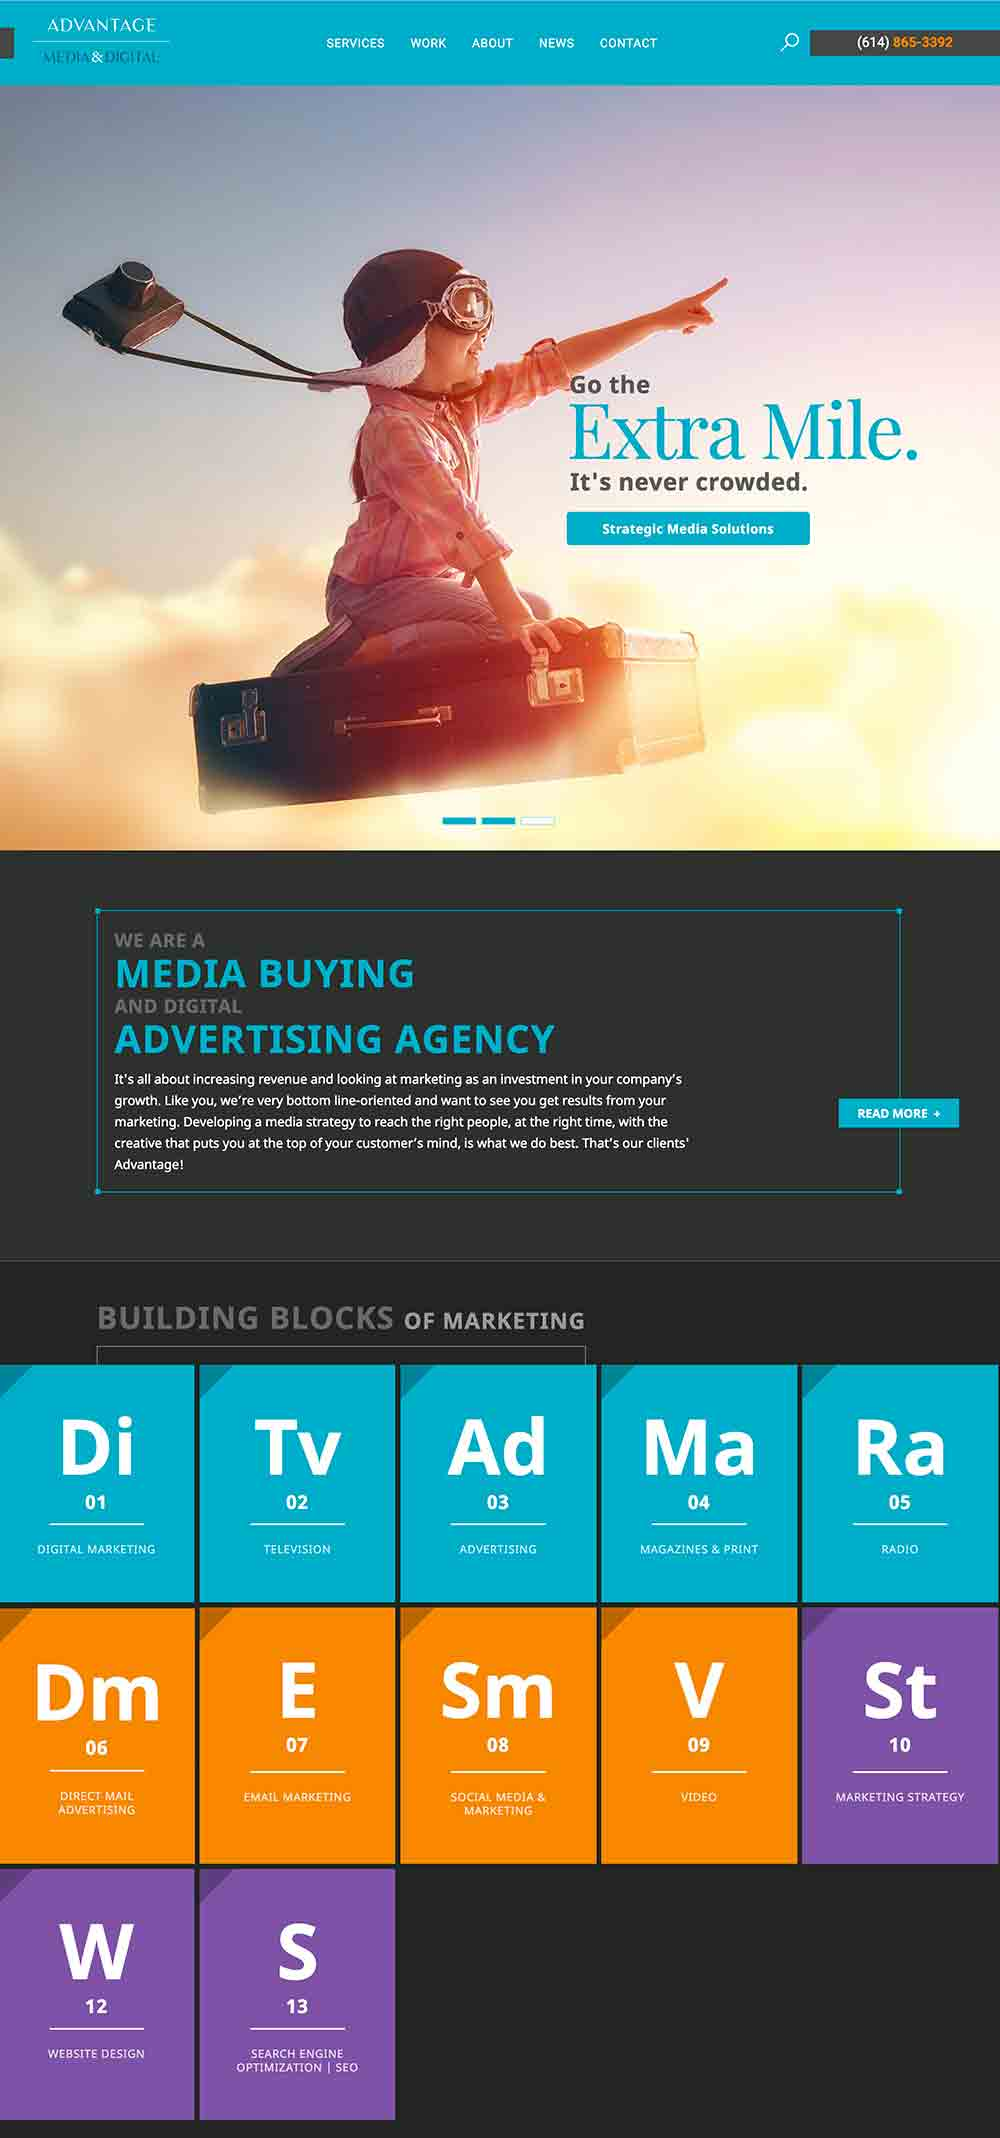 Advantage Media's homepage, designed by Columbus Oh website design firm Sevell